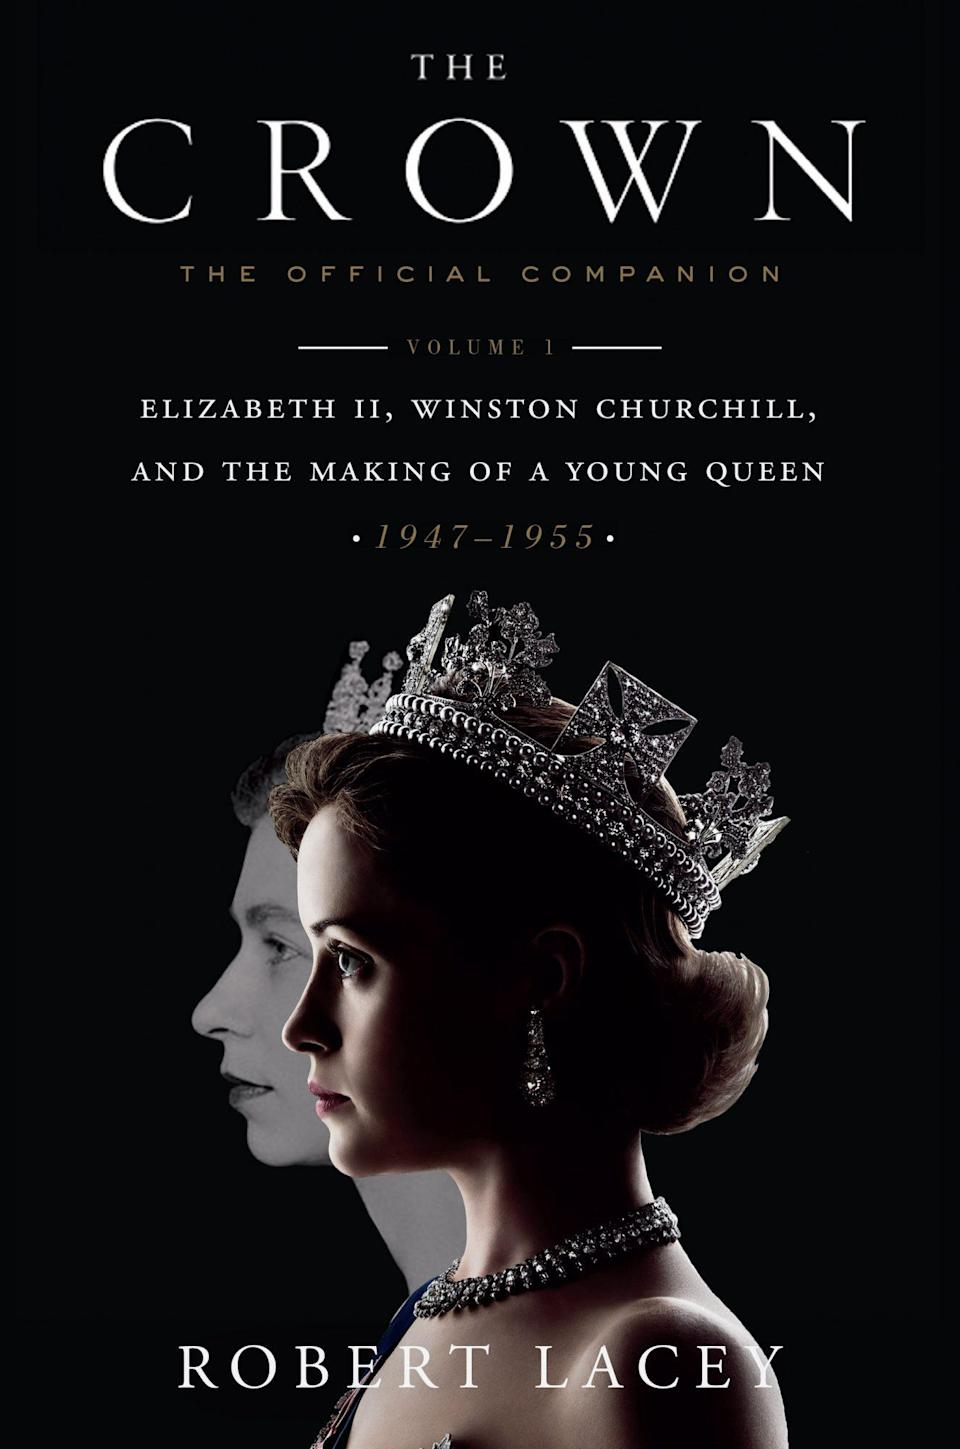 """<p>If your dad was addicted to <em>The Crown</em>, he'll need the companion book written by Robert Lacey, who served as a historical consultant for the series.</p> <p><strong><em>The Crown: The Official Companion</em> Volume 1, <a href=""""https://www.amazon.com/Crown-Companion-Elizabeth-Churchill-1947-1955/dp/1524762288/ref=sr_1_19"""" rel=""""sponsored noopener"""" target=""""_blank"""" data-ylk=""""slk:$16"""" class=""""link rapid-noclick-resp"""">$16</a></strong></p>"""